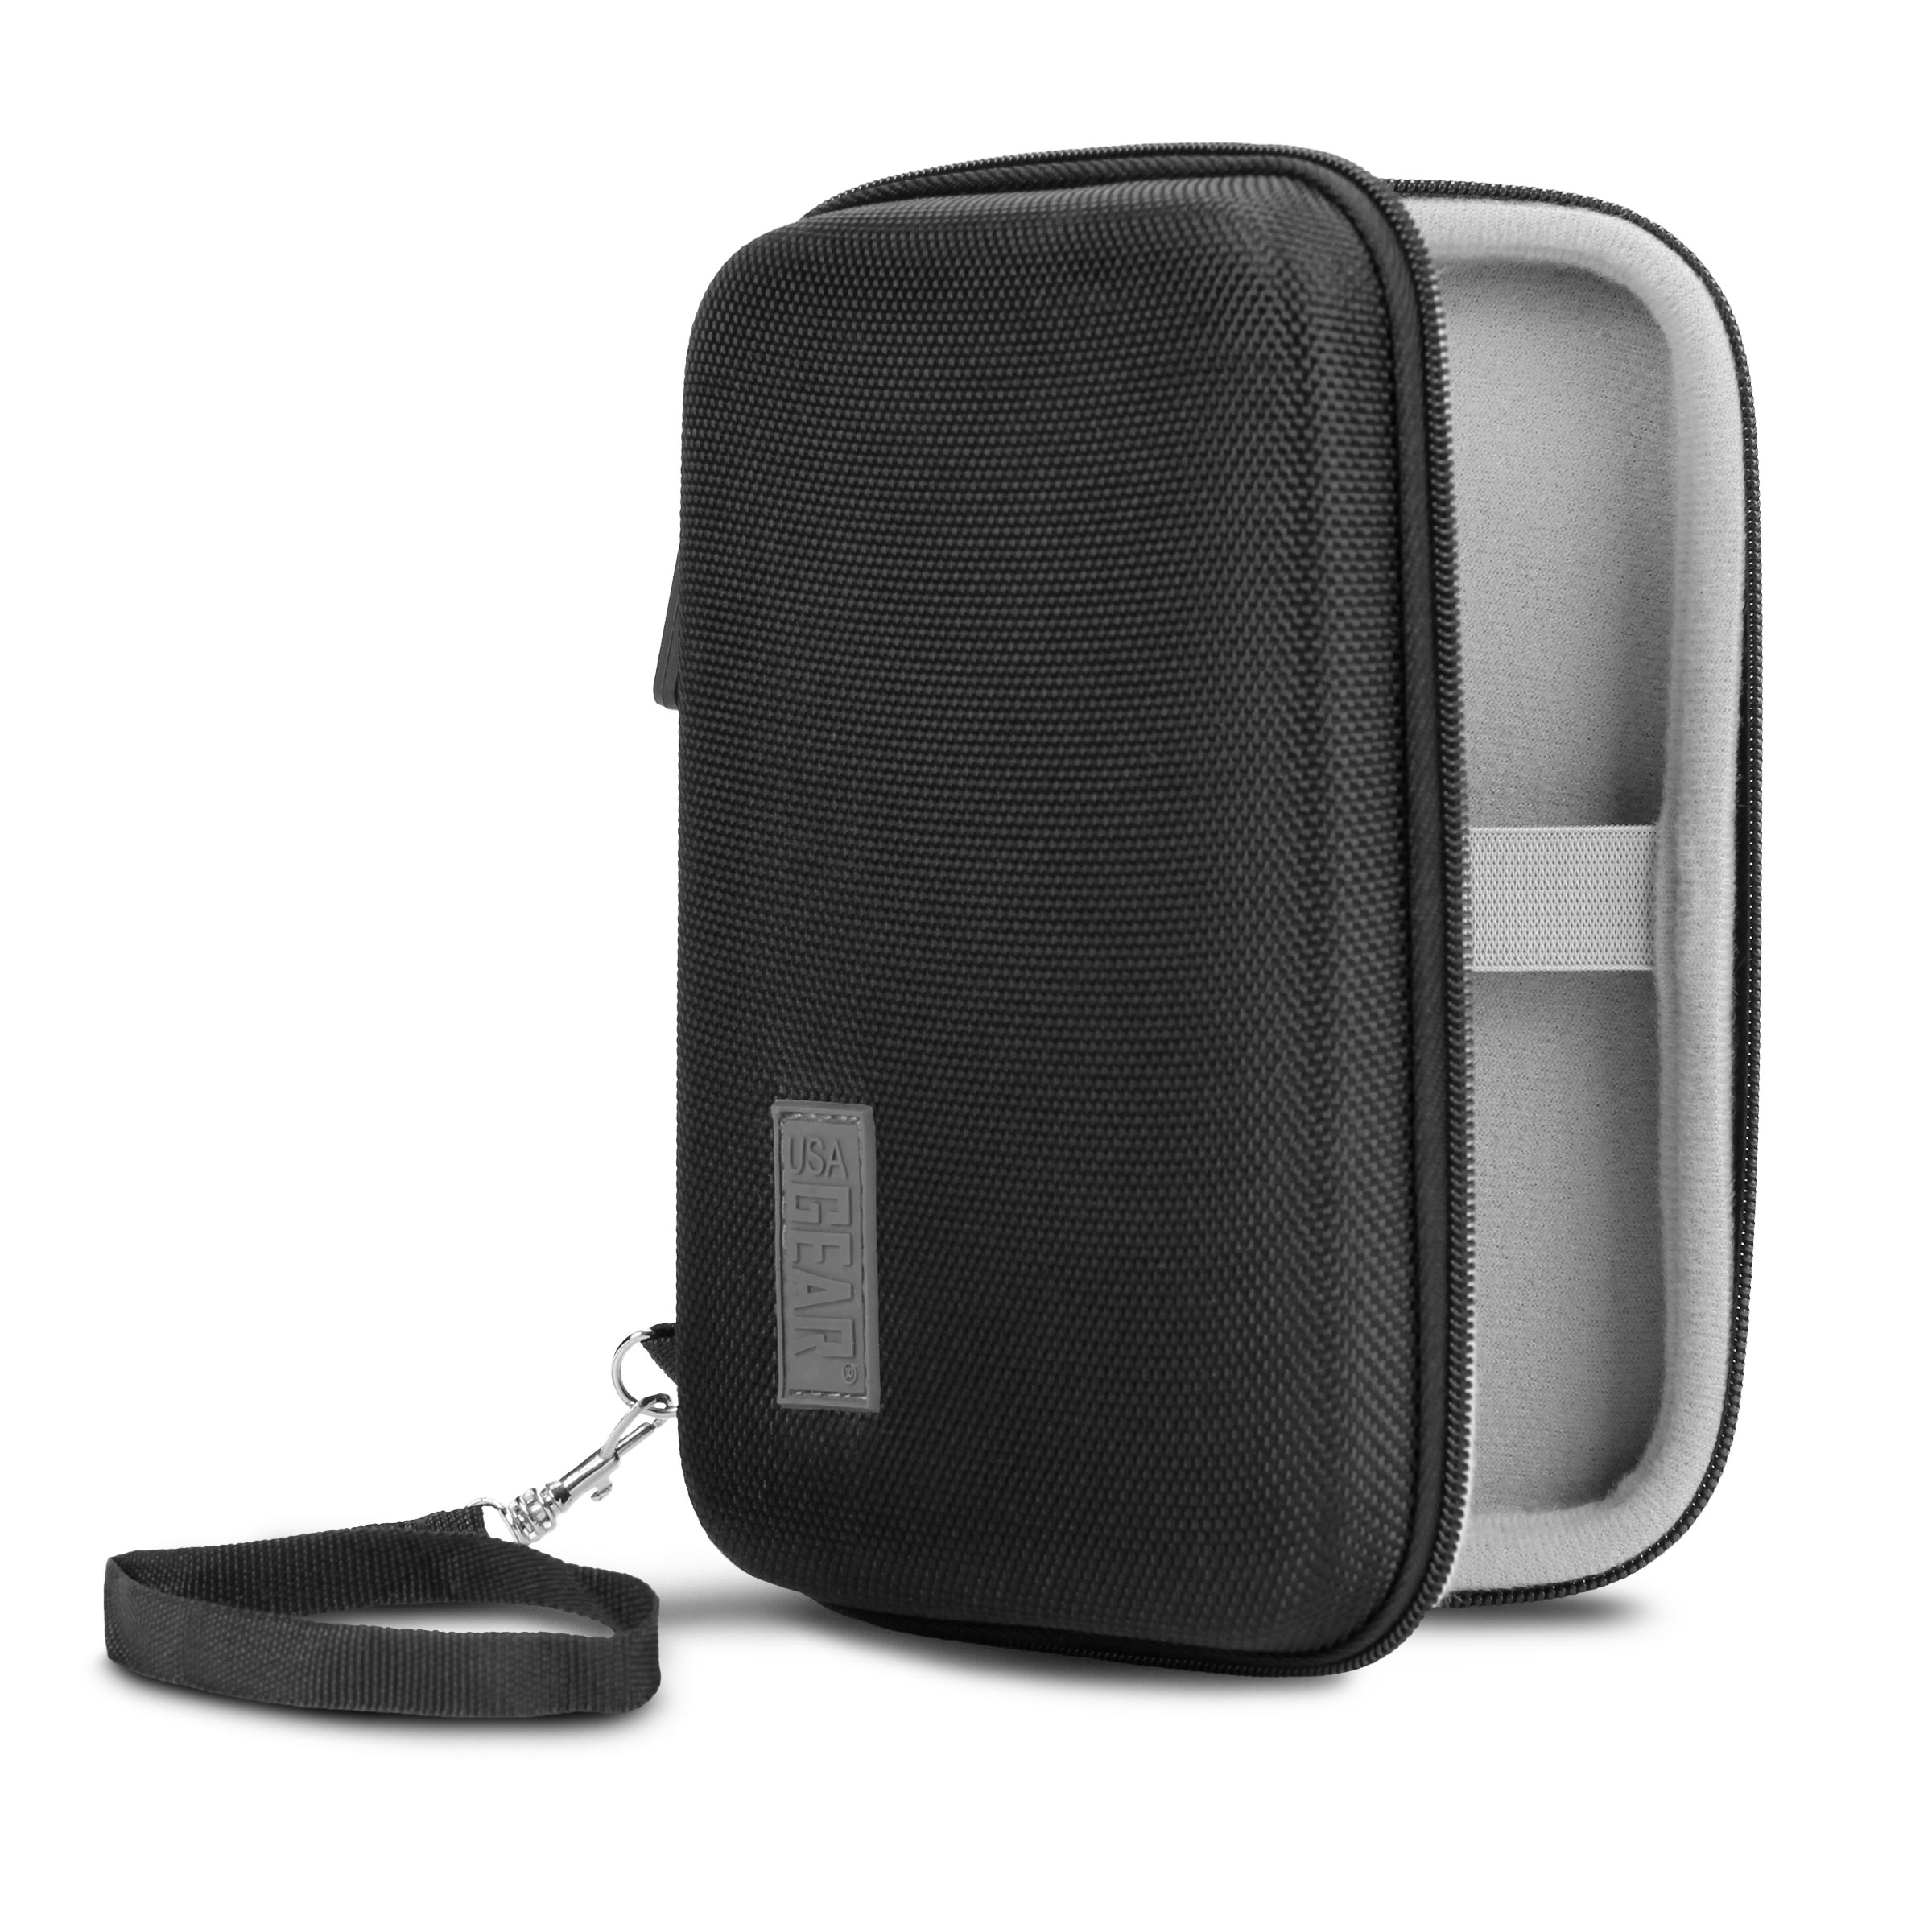 USA Gear External Portable Hard Drive Case for Silicon Power Military with Shell Exterior 0 Accessory Genie: